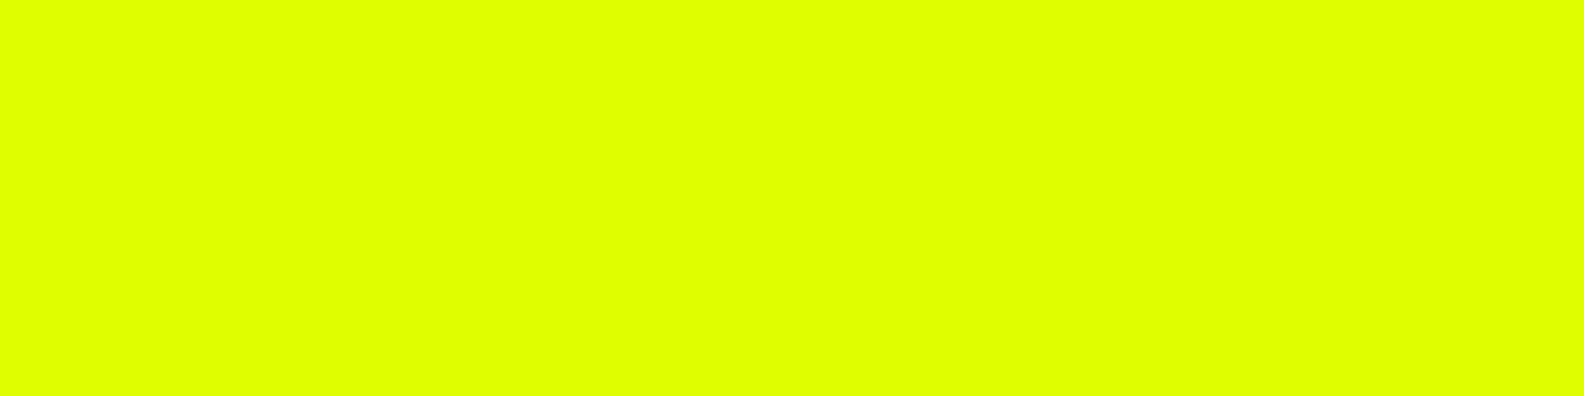 1584x396 Chartreuse Traditional Solid Color Background